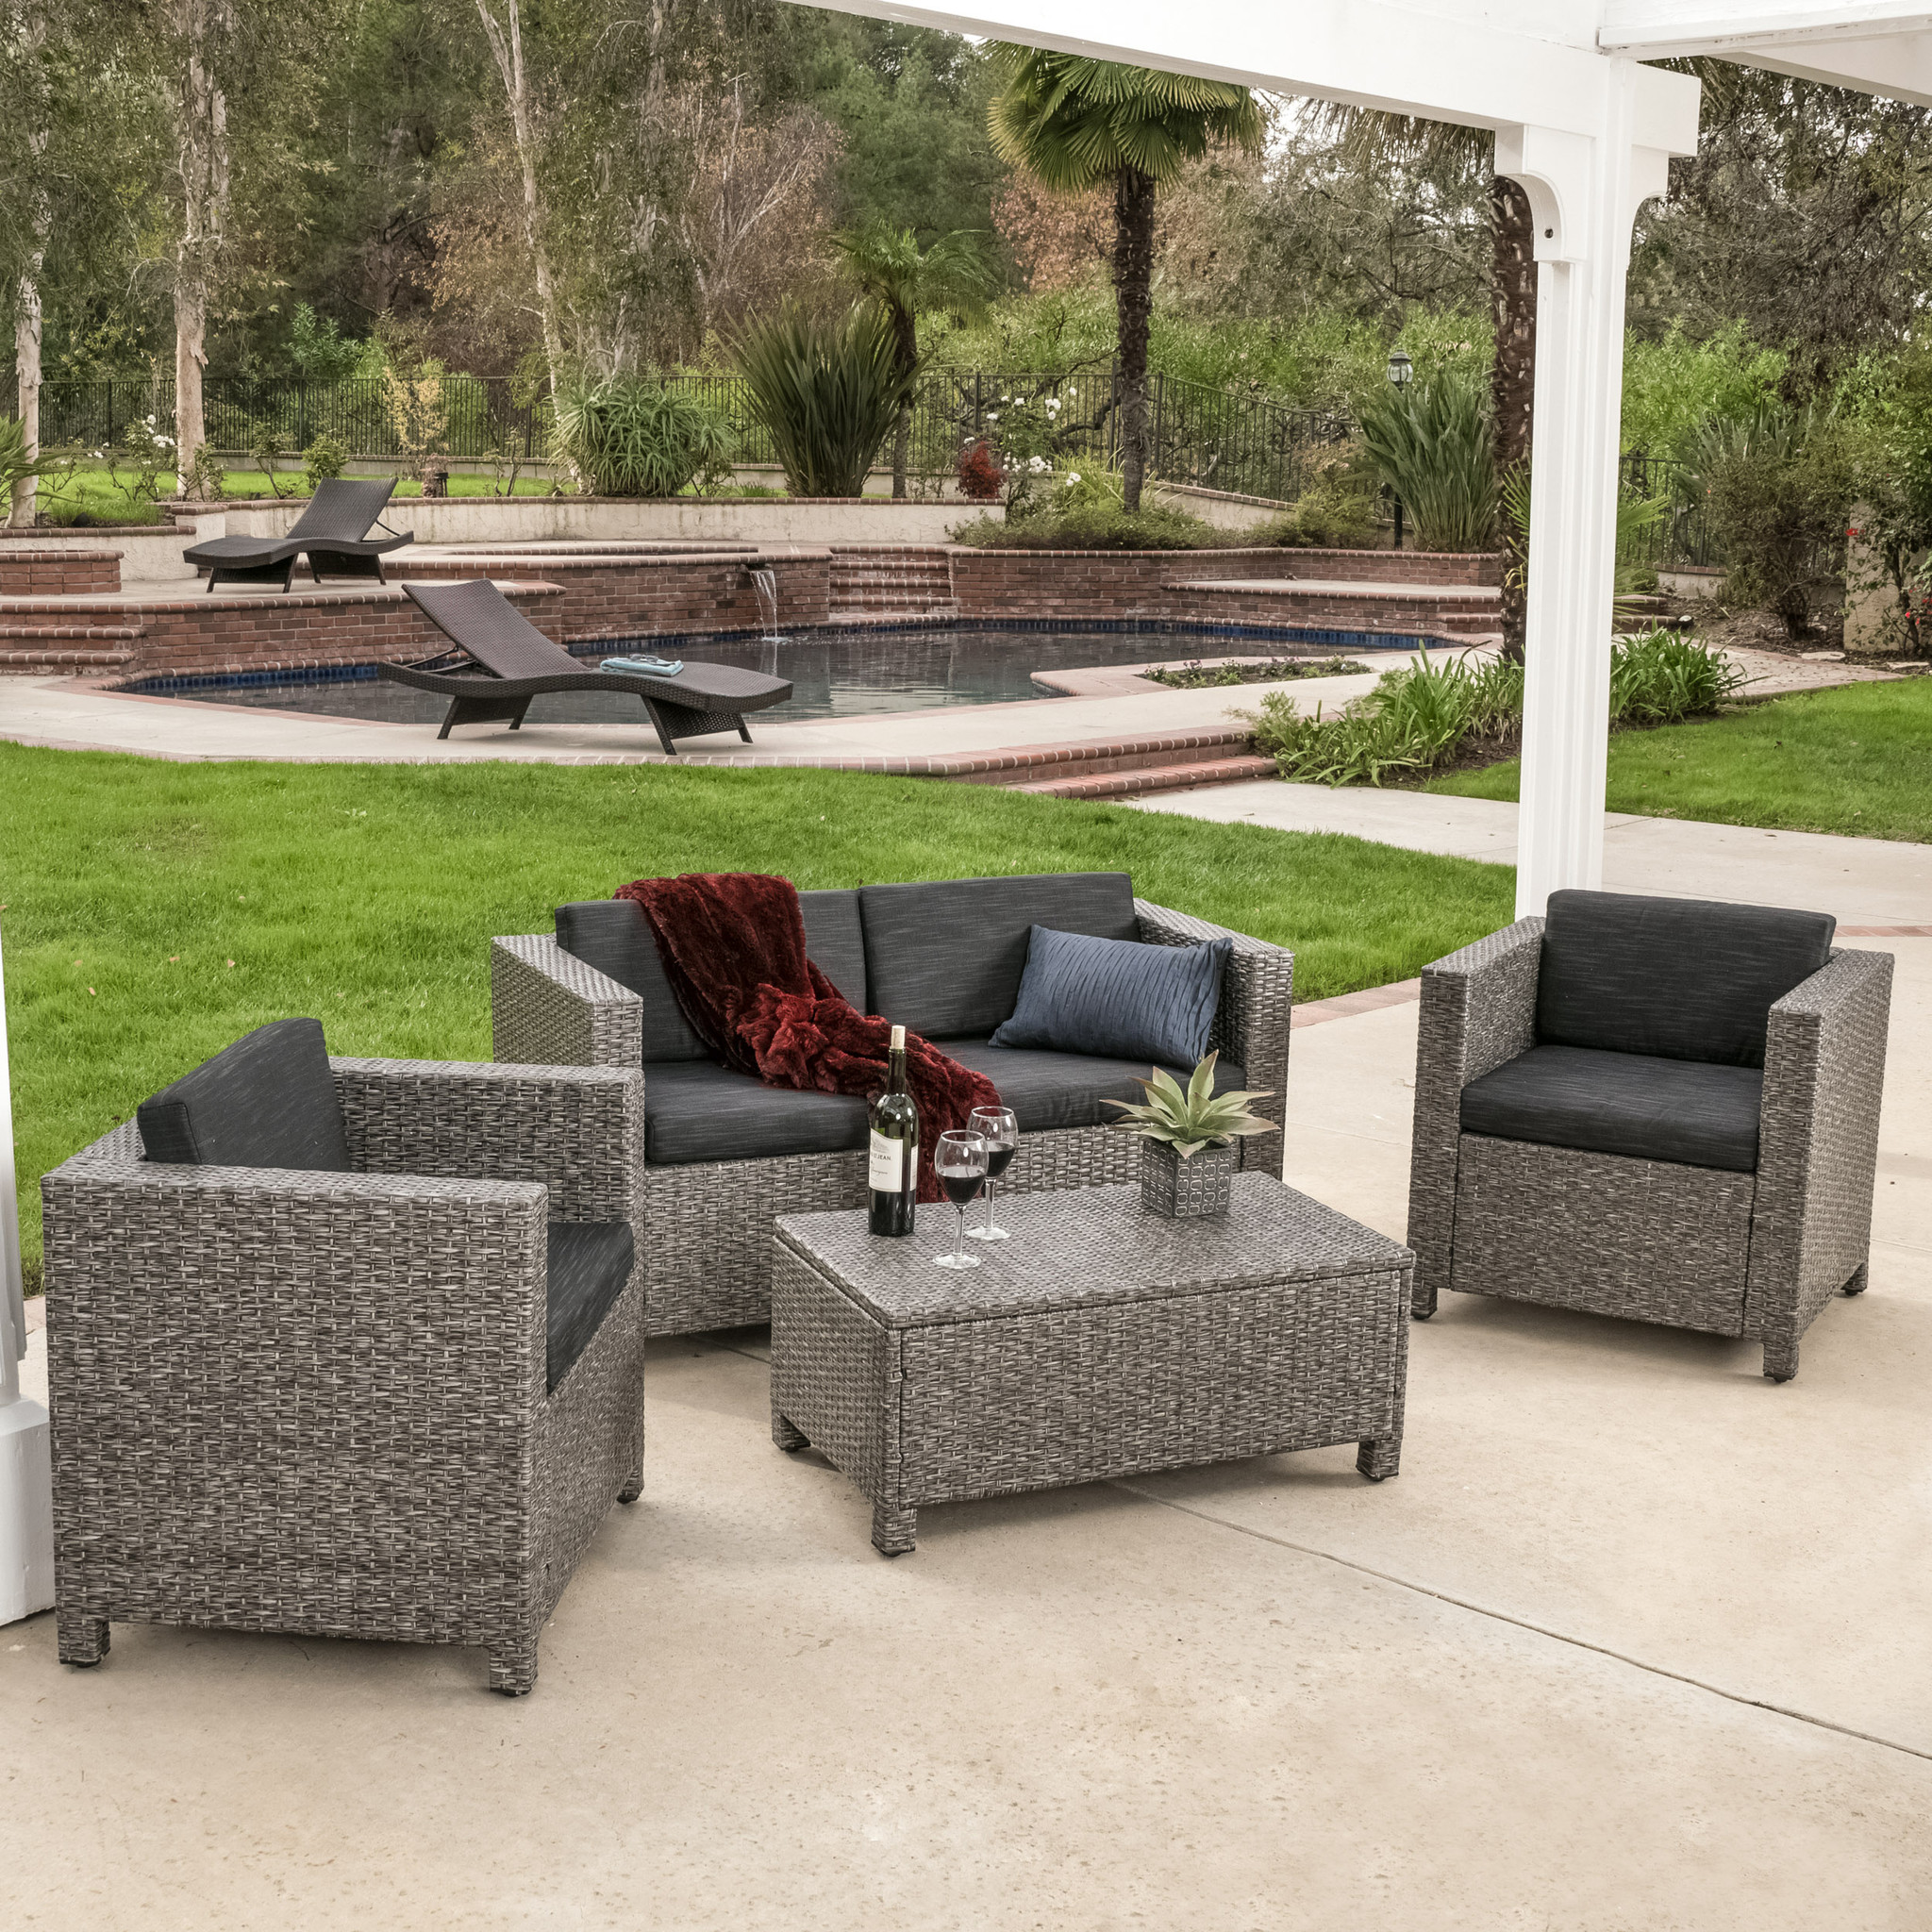 Pesa Grey Outdoor Wicker Sofa Set